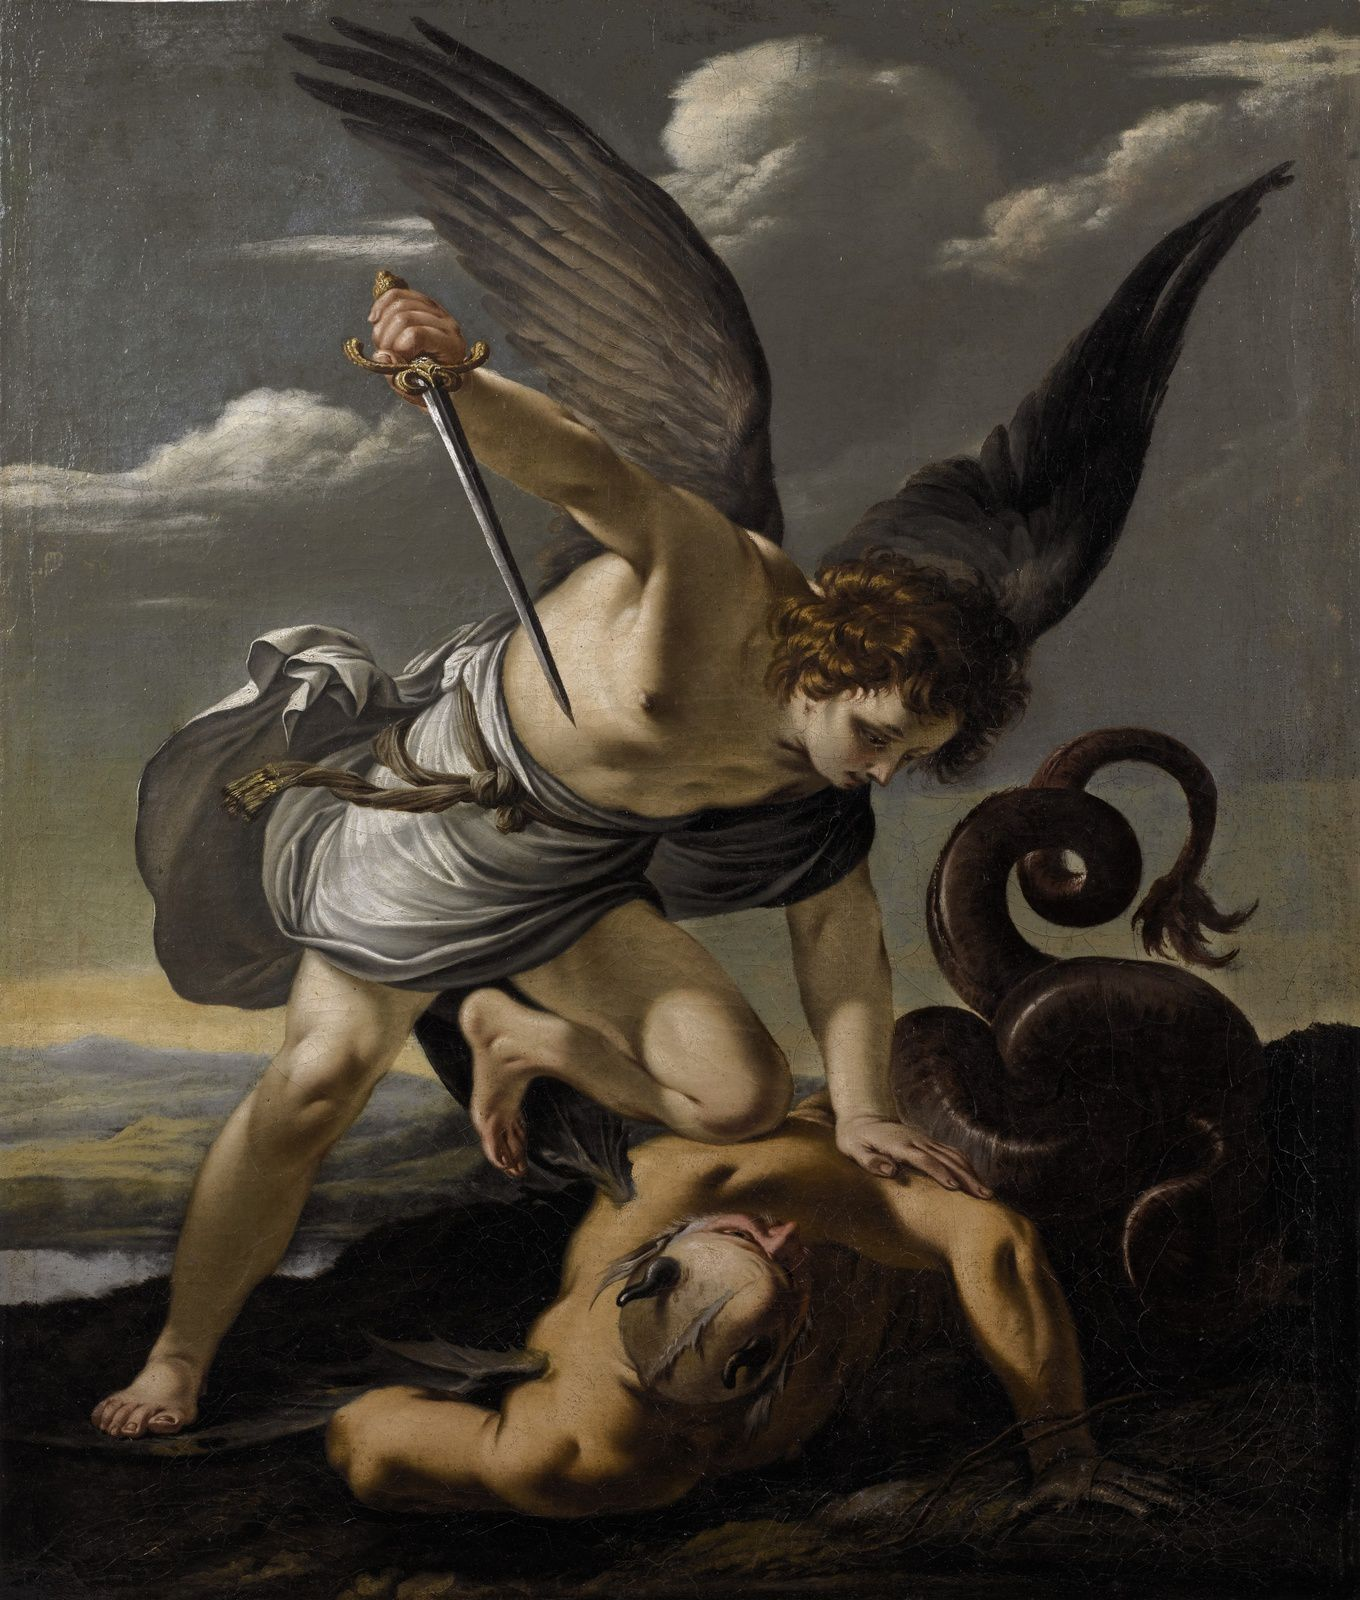 Attribué à Laurent De La Hyre, Saint Michel terrassant le dragon, 1645. Huile sur toile 101 x 85,5cm.Estimation : 60 000 – 80 000 euros © Crédit Photo Art Digital Studio / Sotheby's France